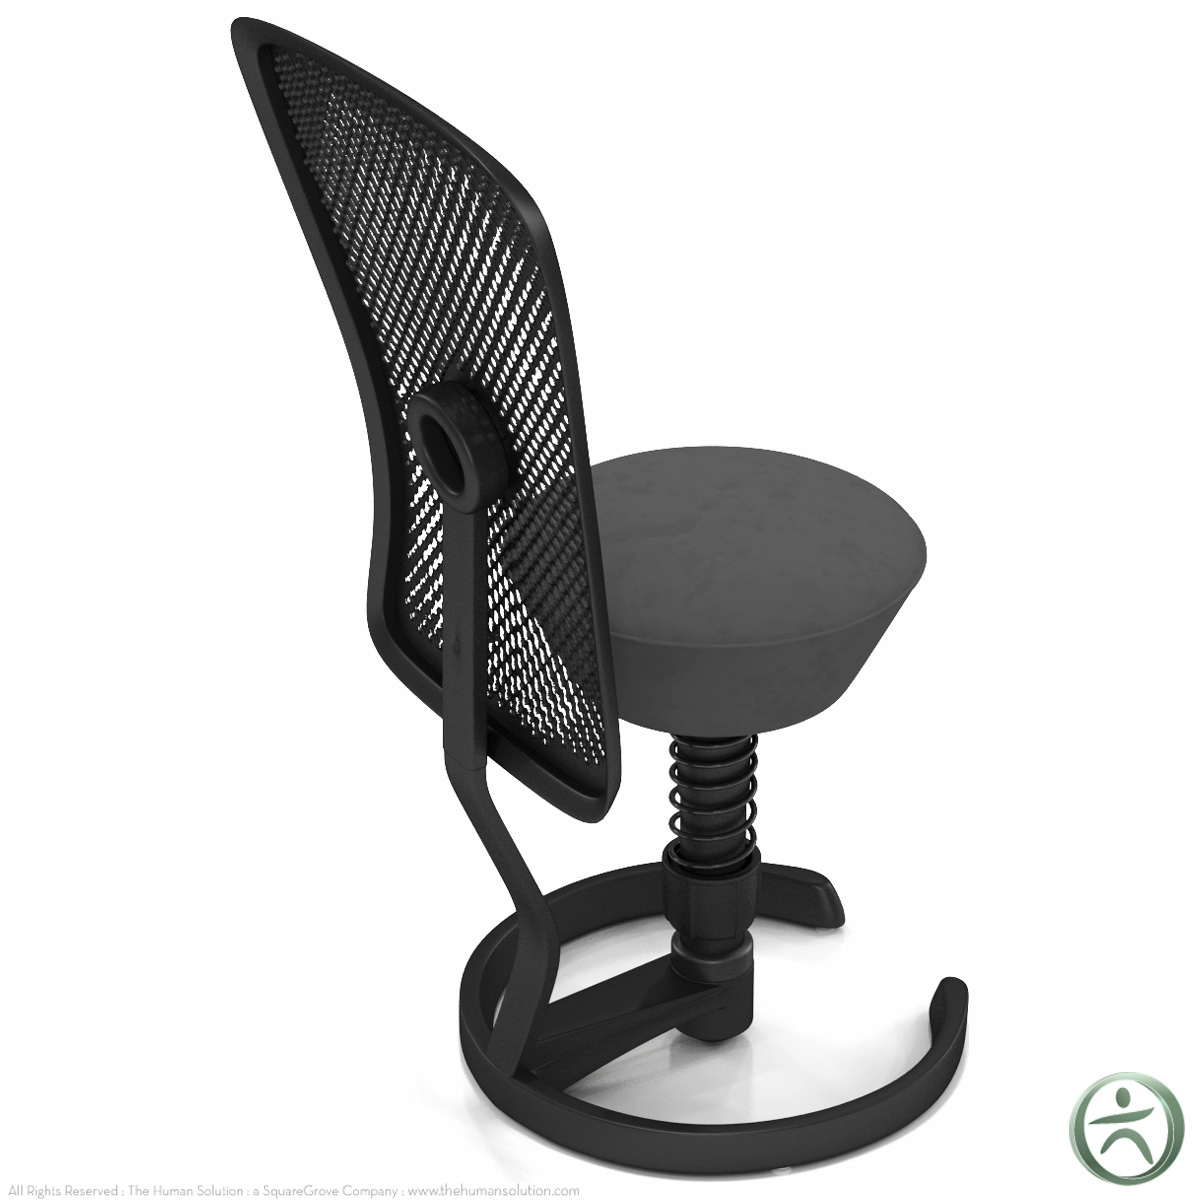 Swopper Chair Swopper Air Shop Swopper Seating